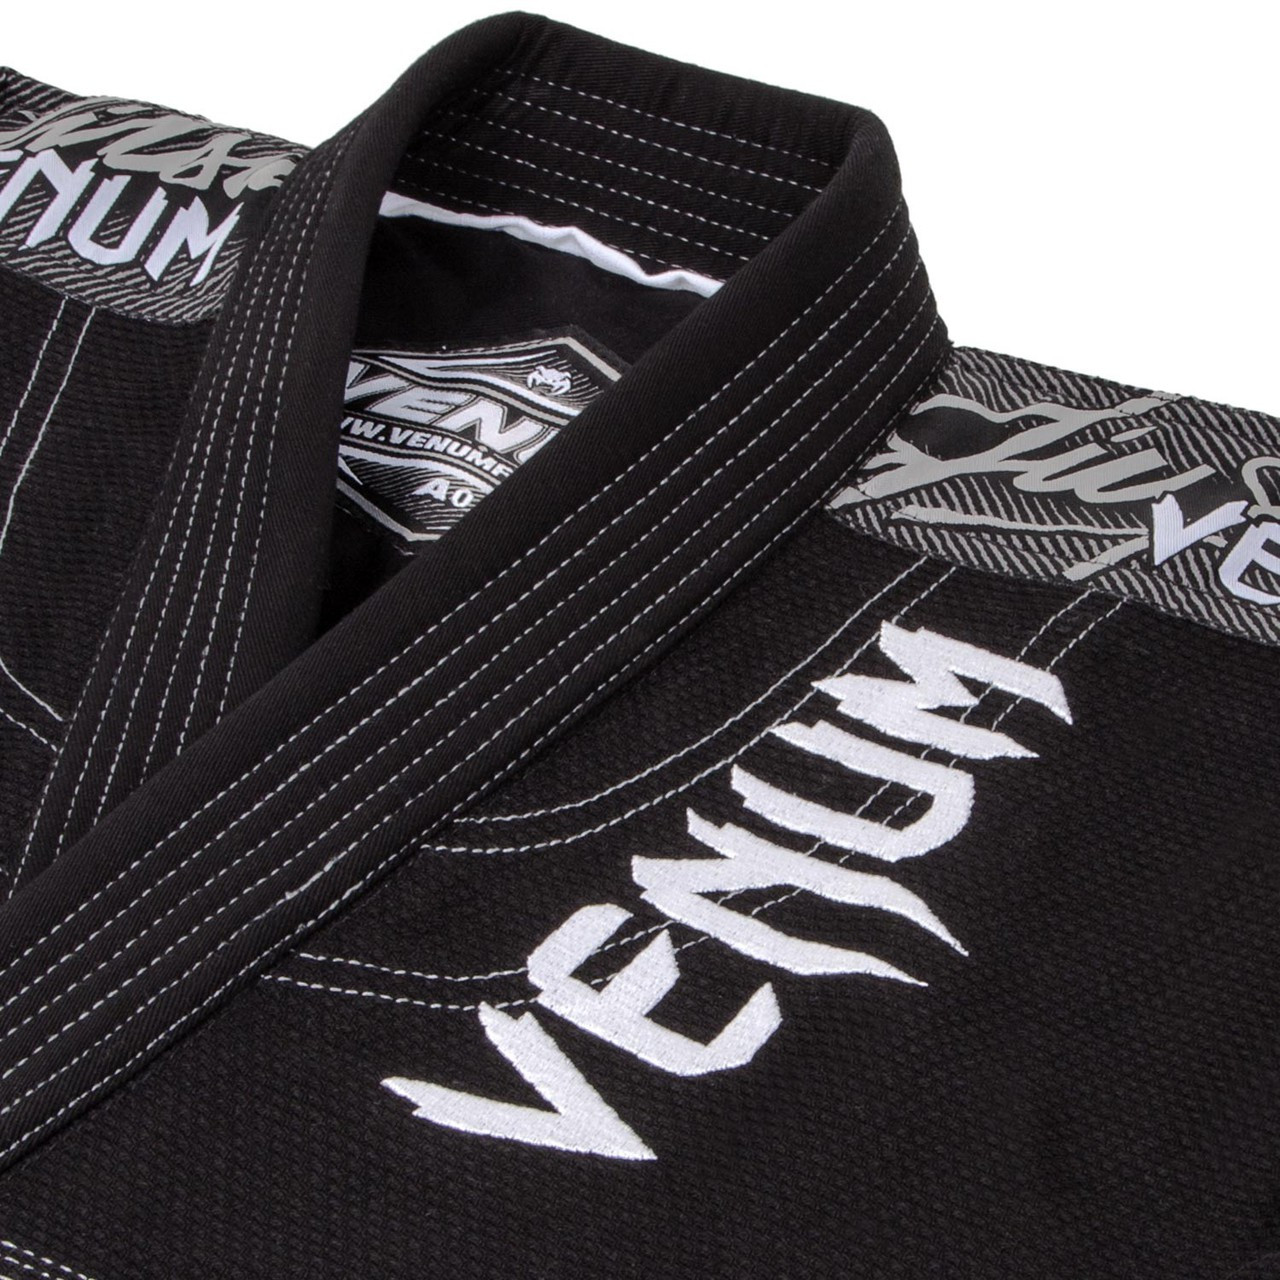 Zoom in to the jacket of the Venum challenger 3.0 BJJ Gi Black/Grey Available at www.thejiujitsushop.com  Enjoy Free Shipping from The Jiu Jitsu Shop today!